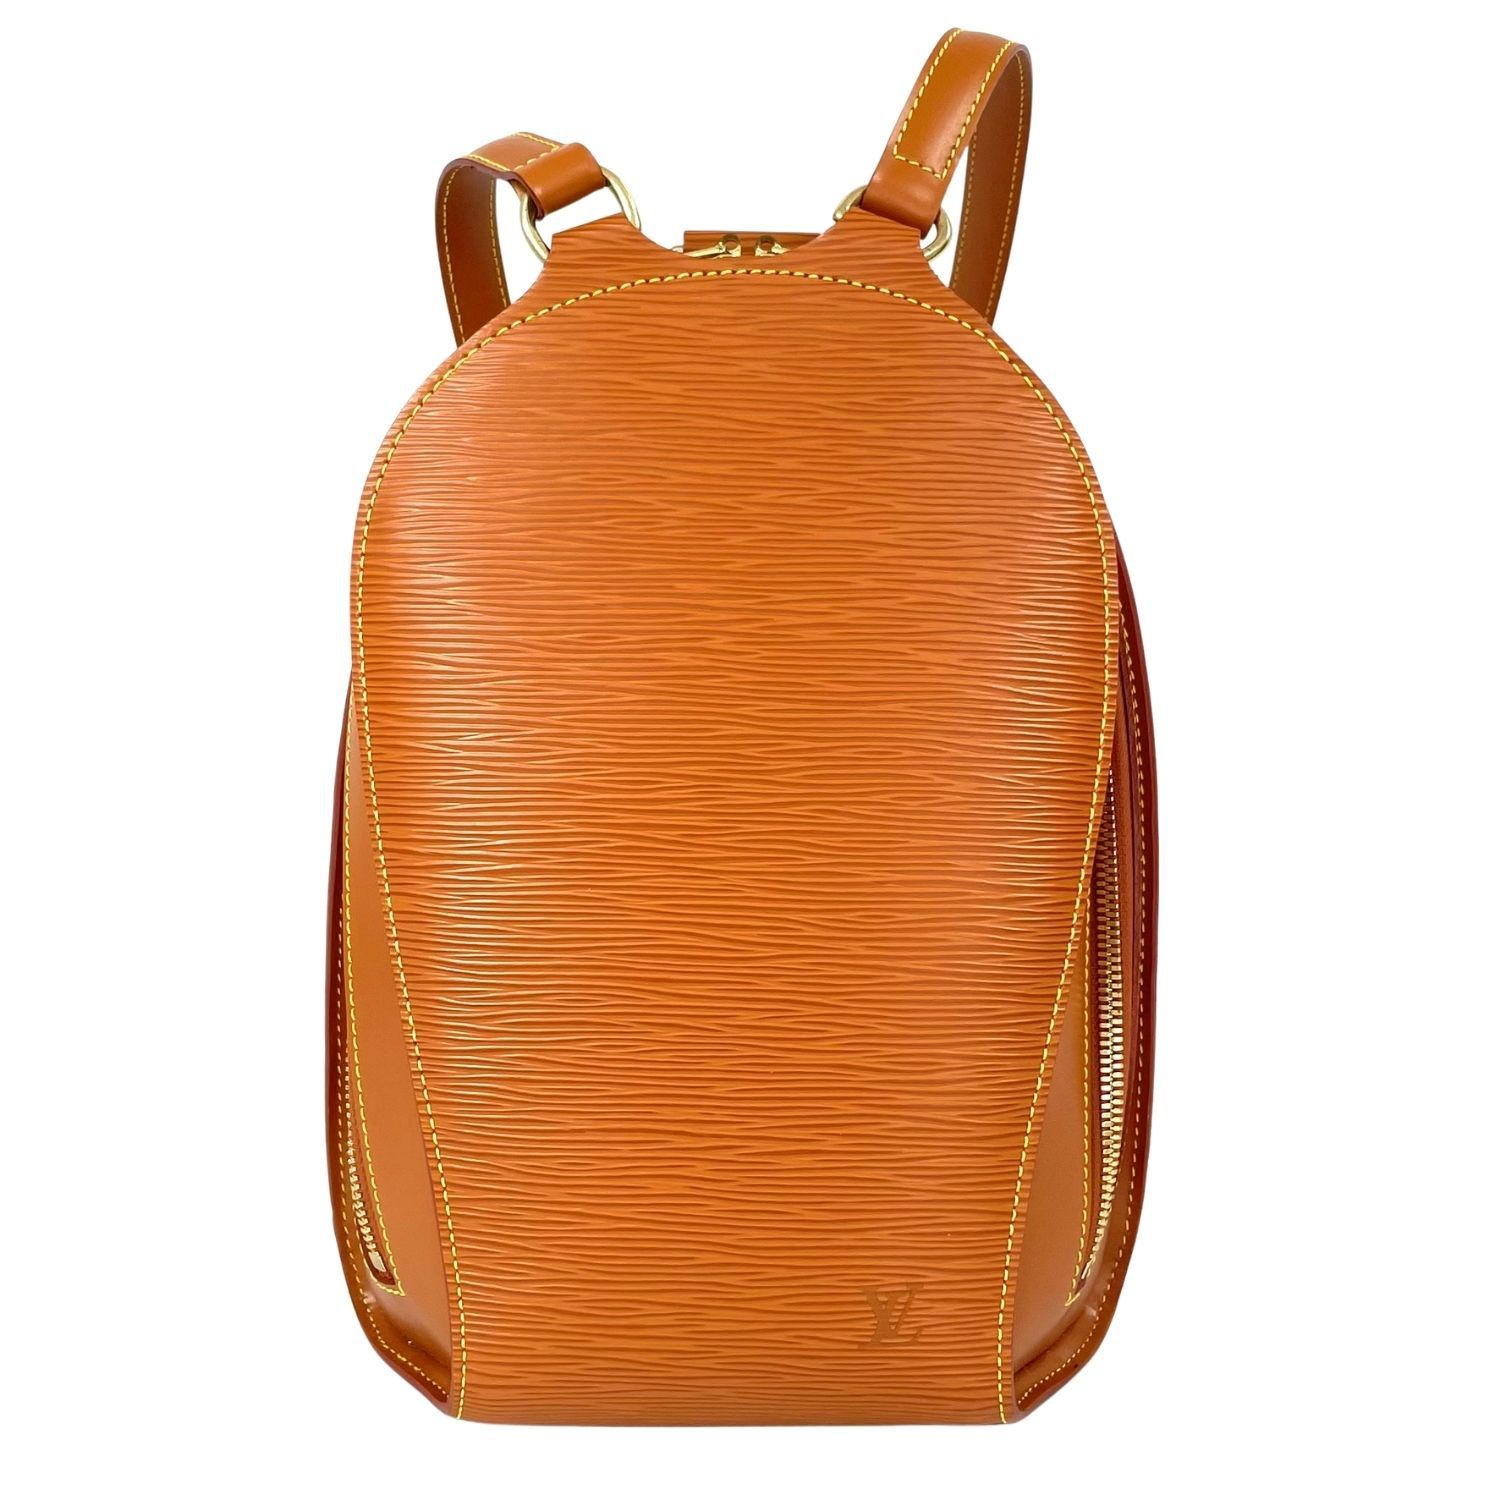 Mochila Louis Vuitton Mabillon Epi